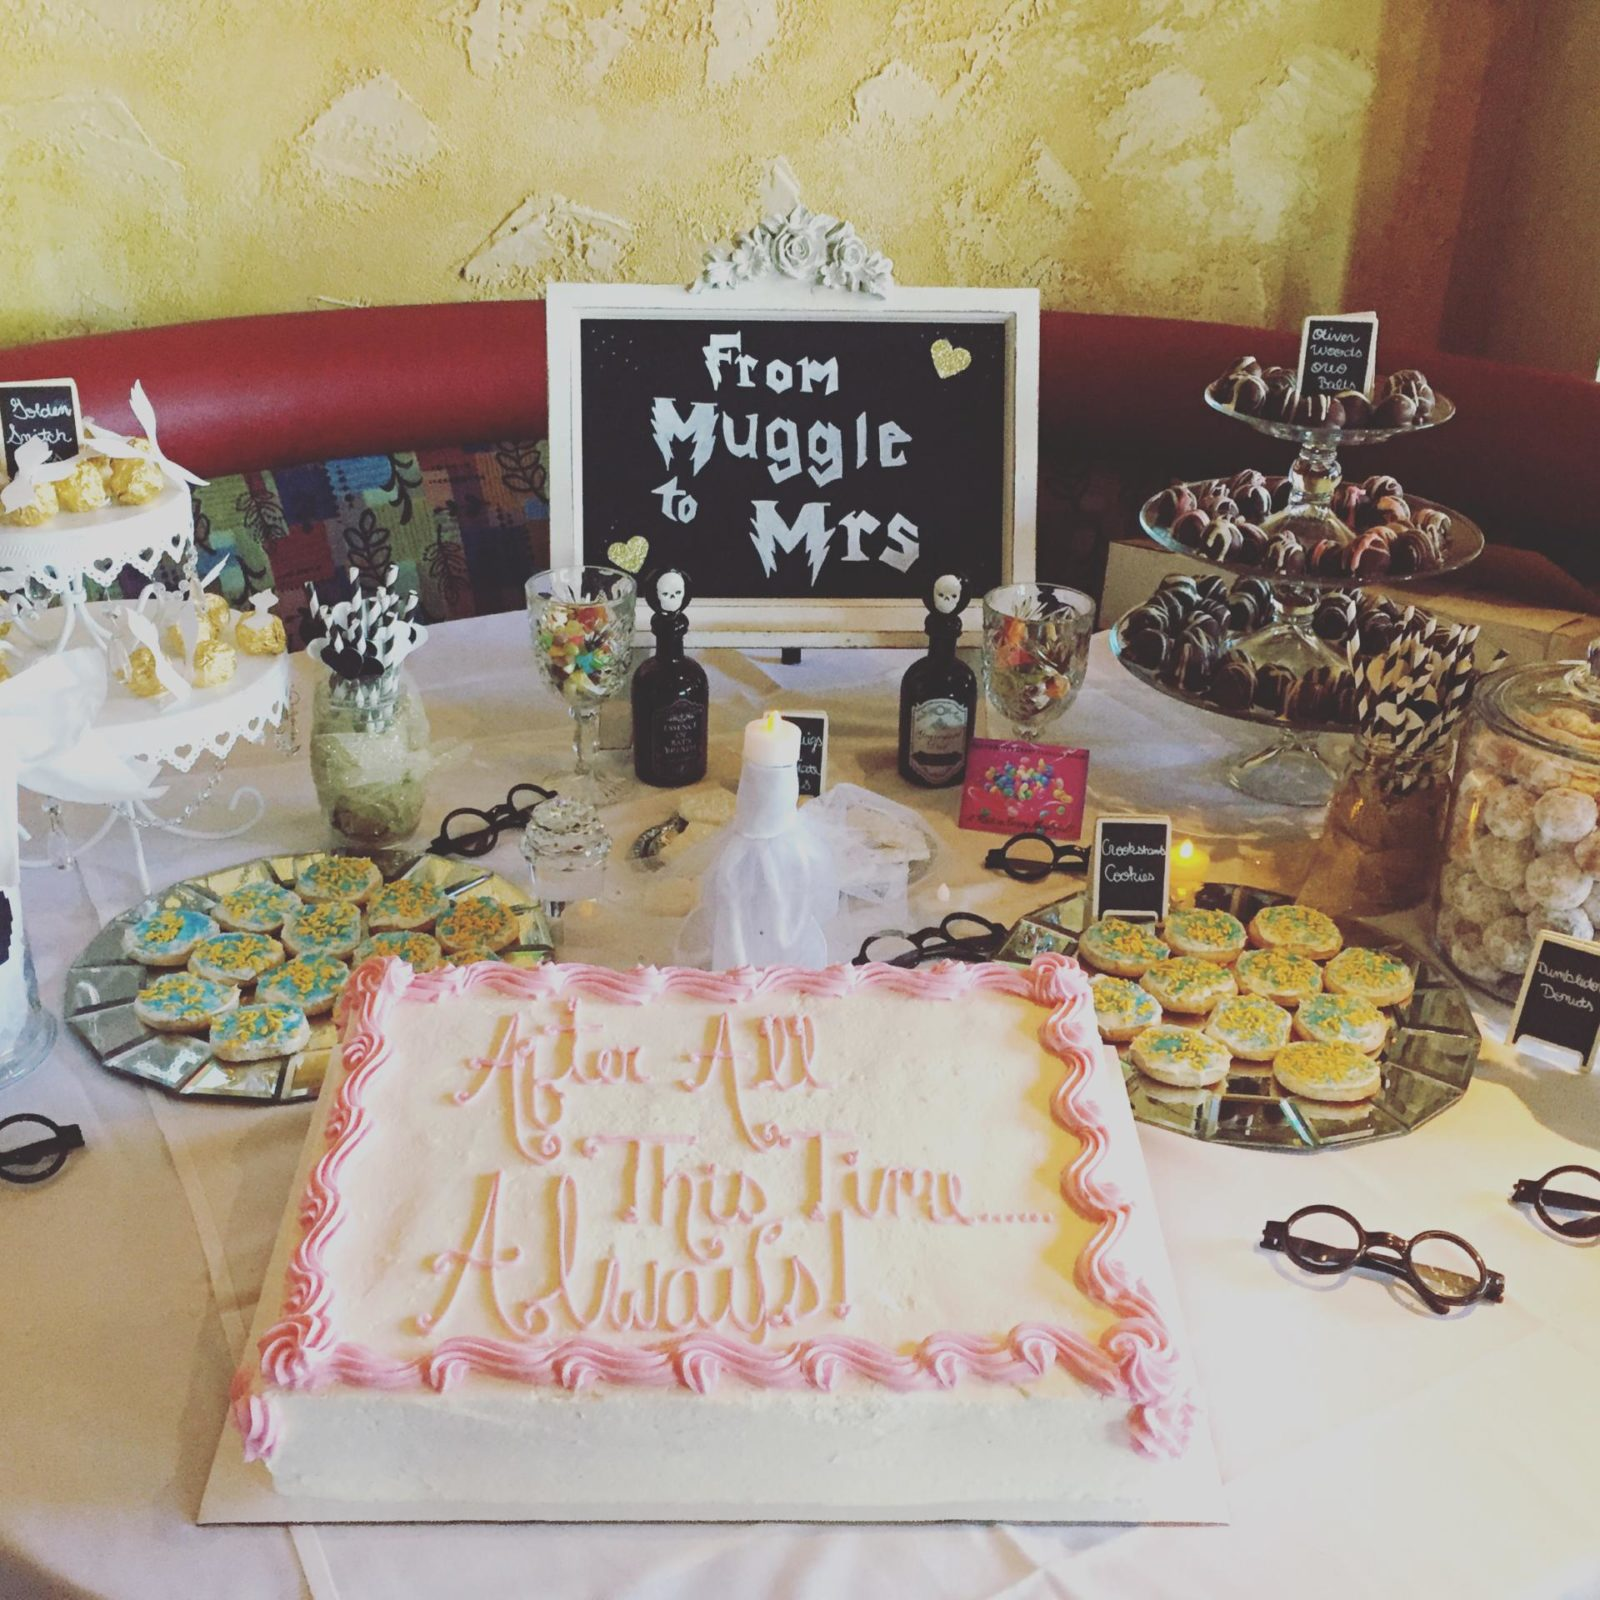 f1ffcde2068d A Harry Potter Themed Bridal Shower - Small Towns   City Lights